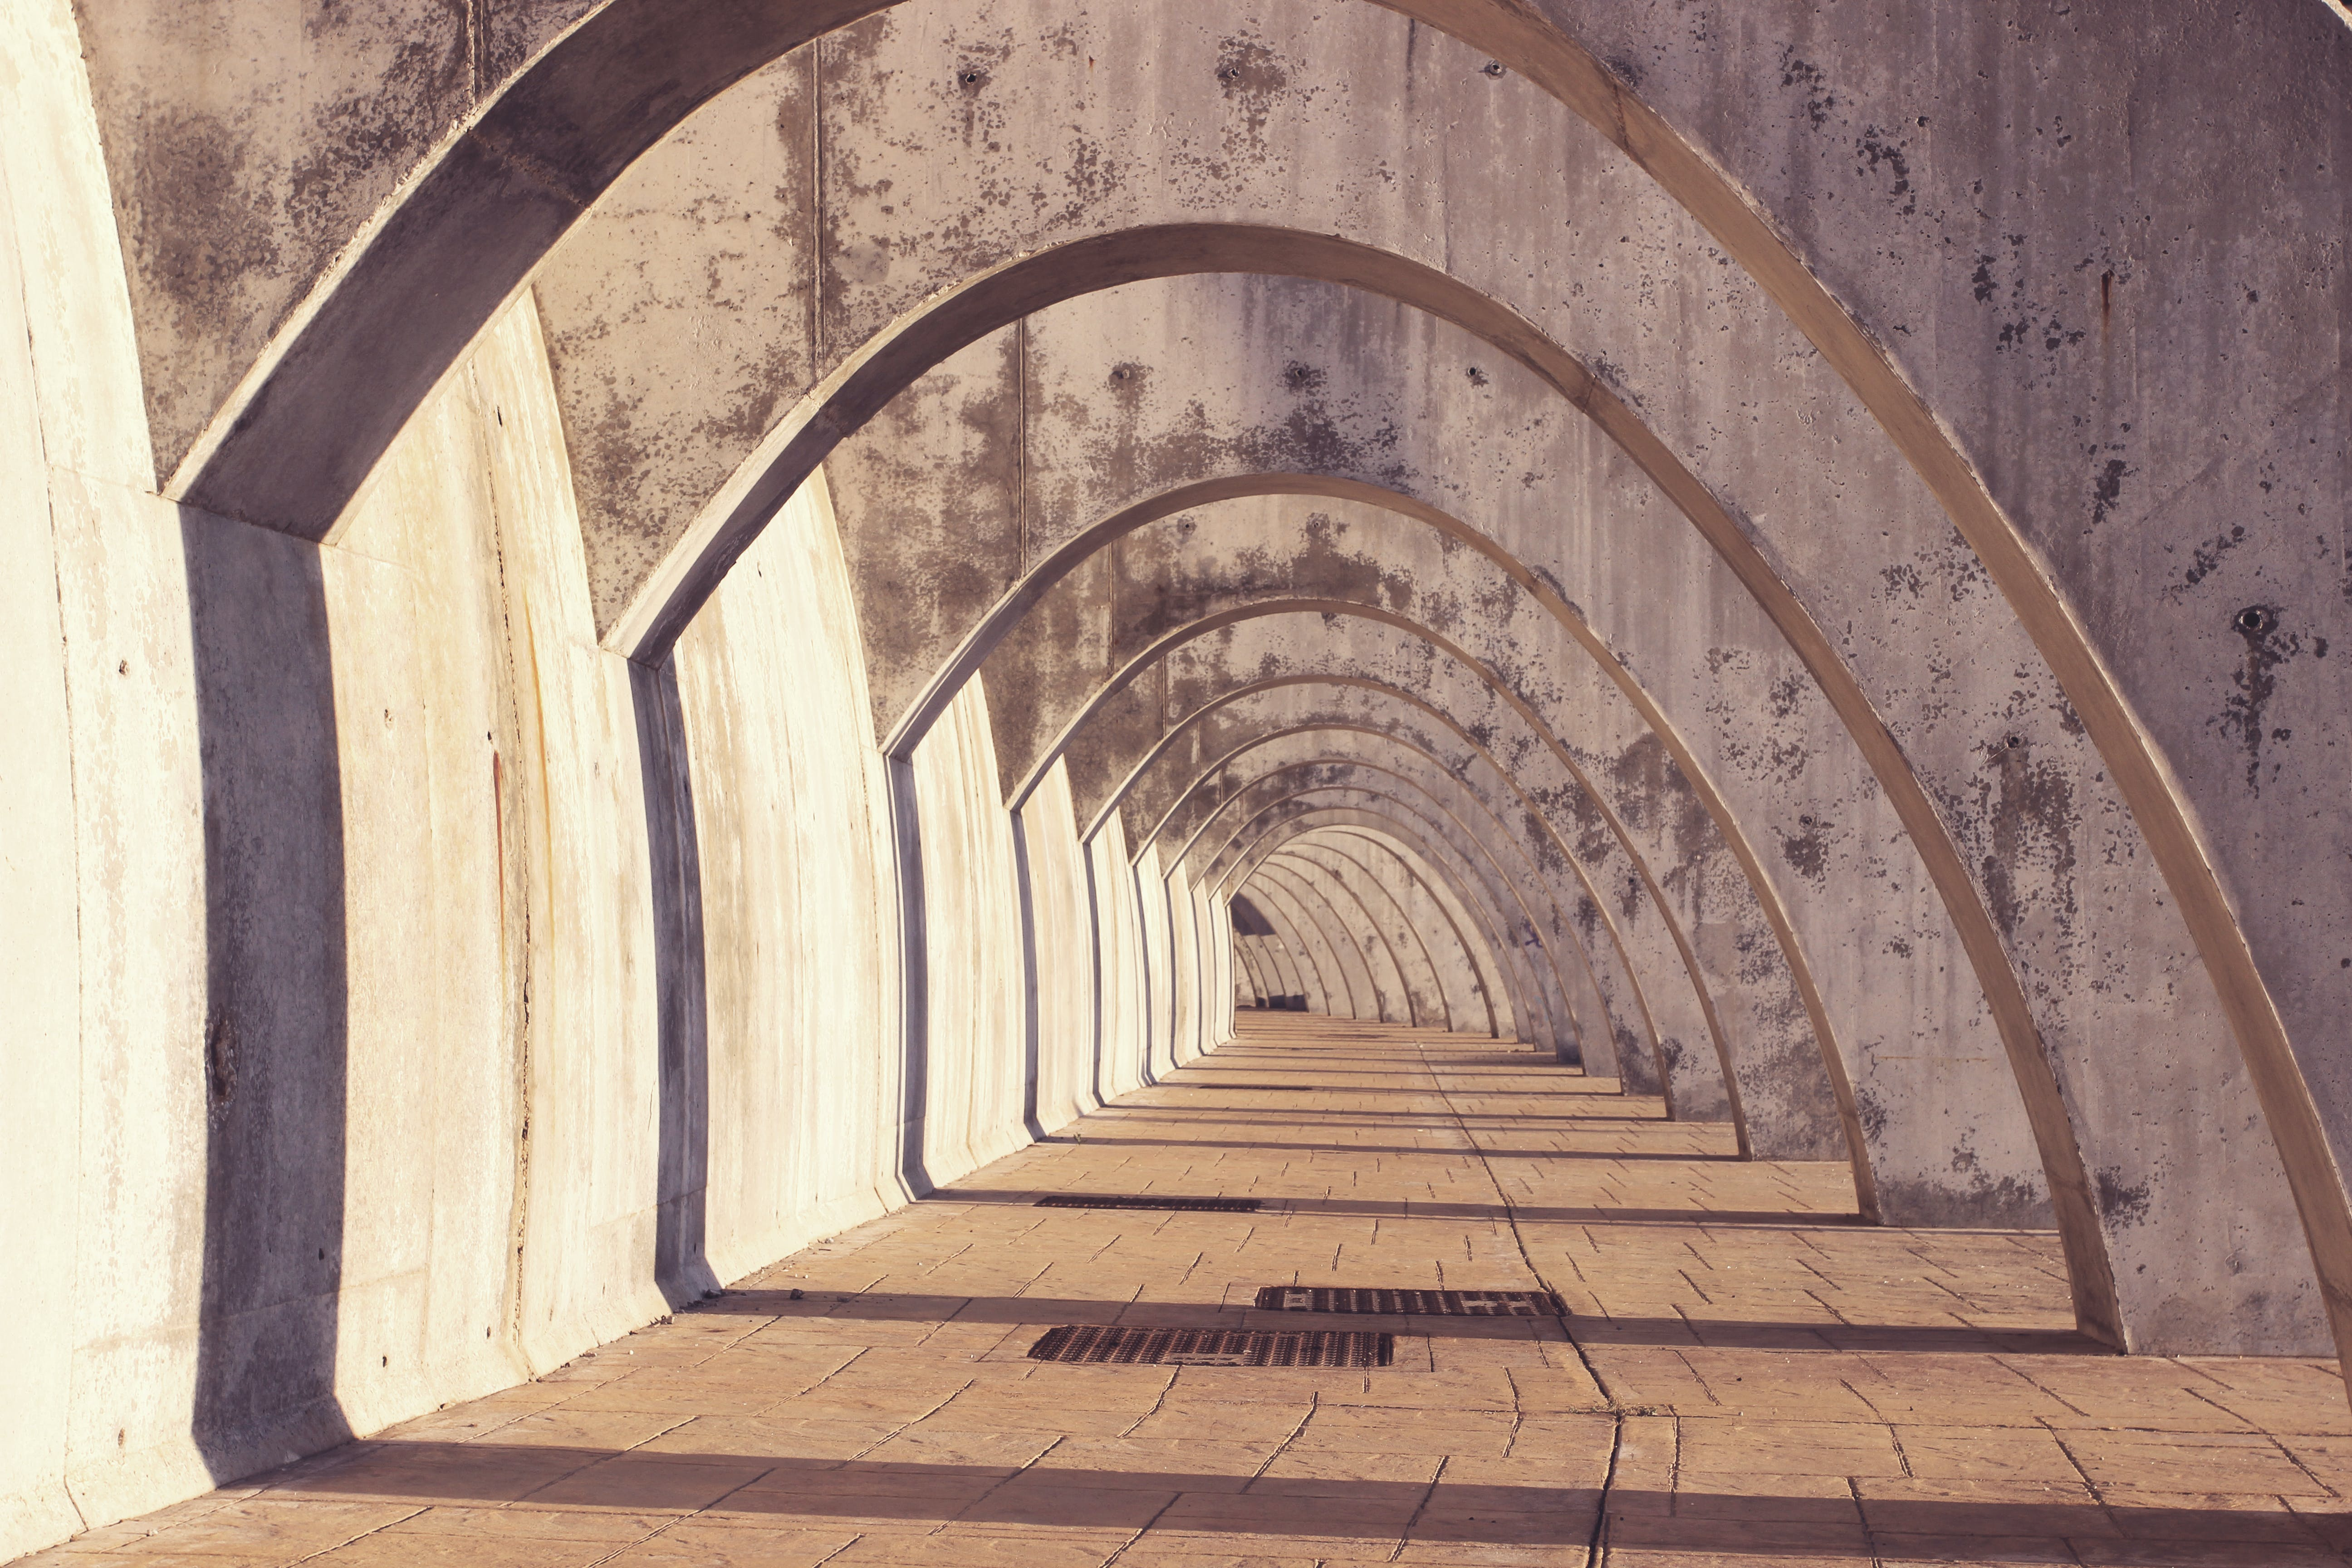 Photograph of a Concrete Structure